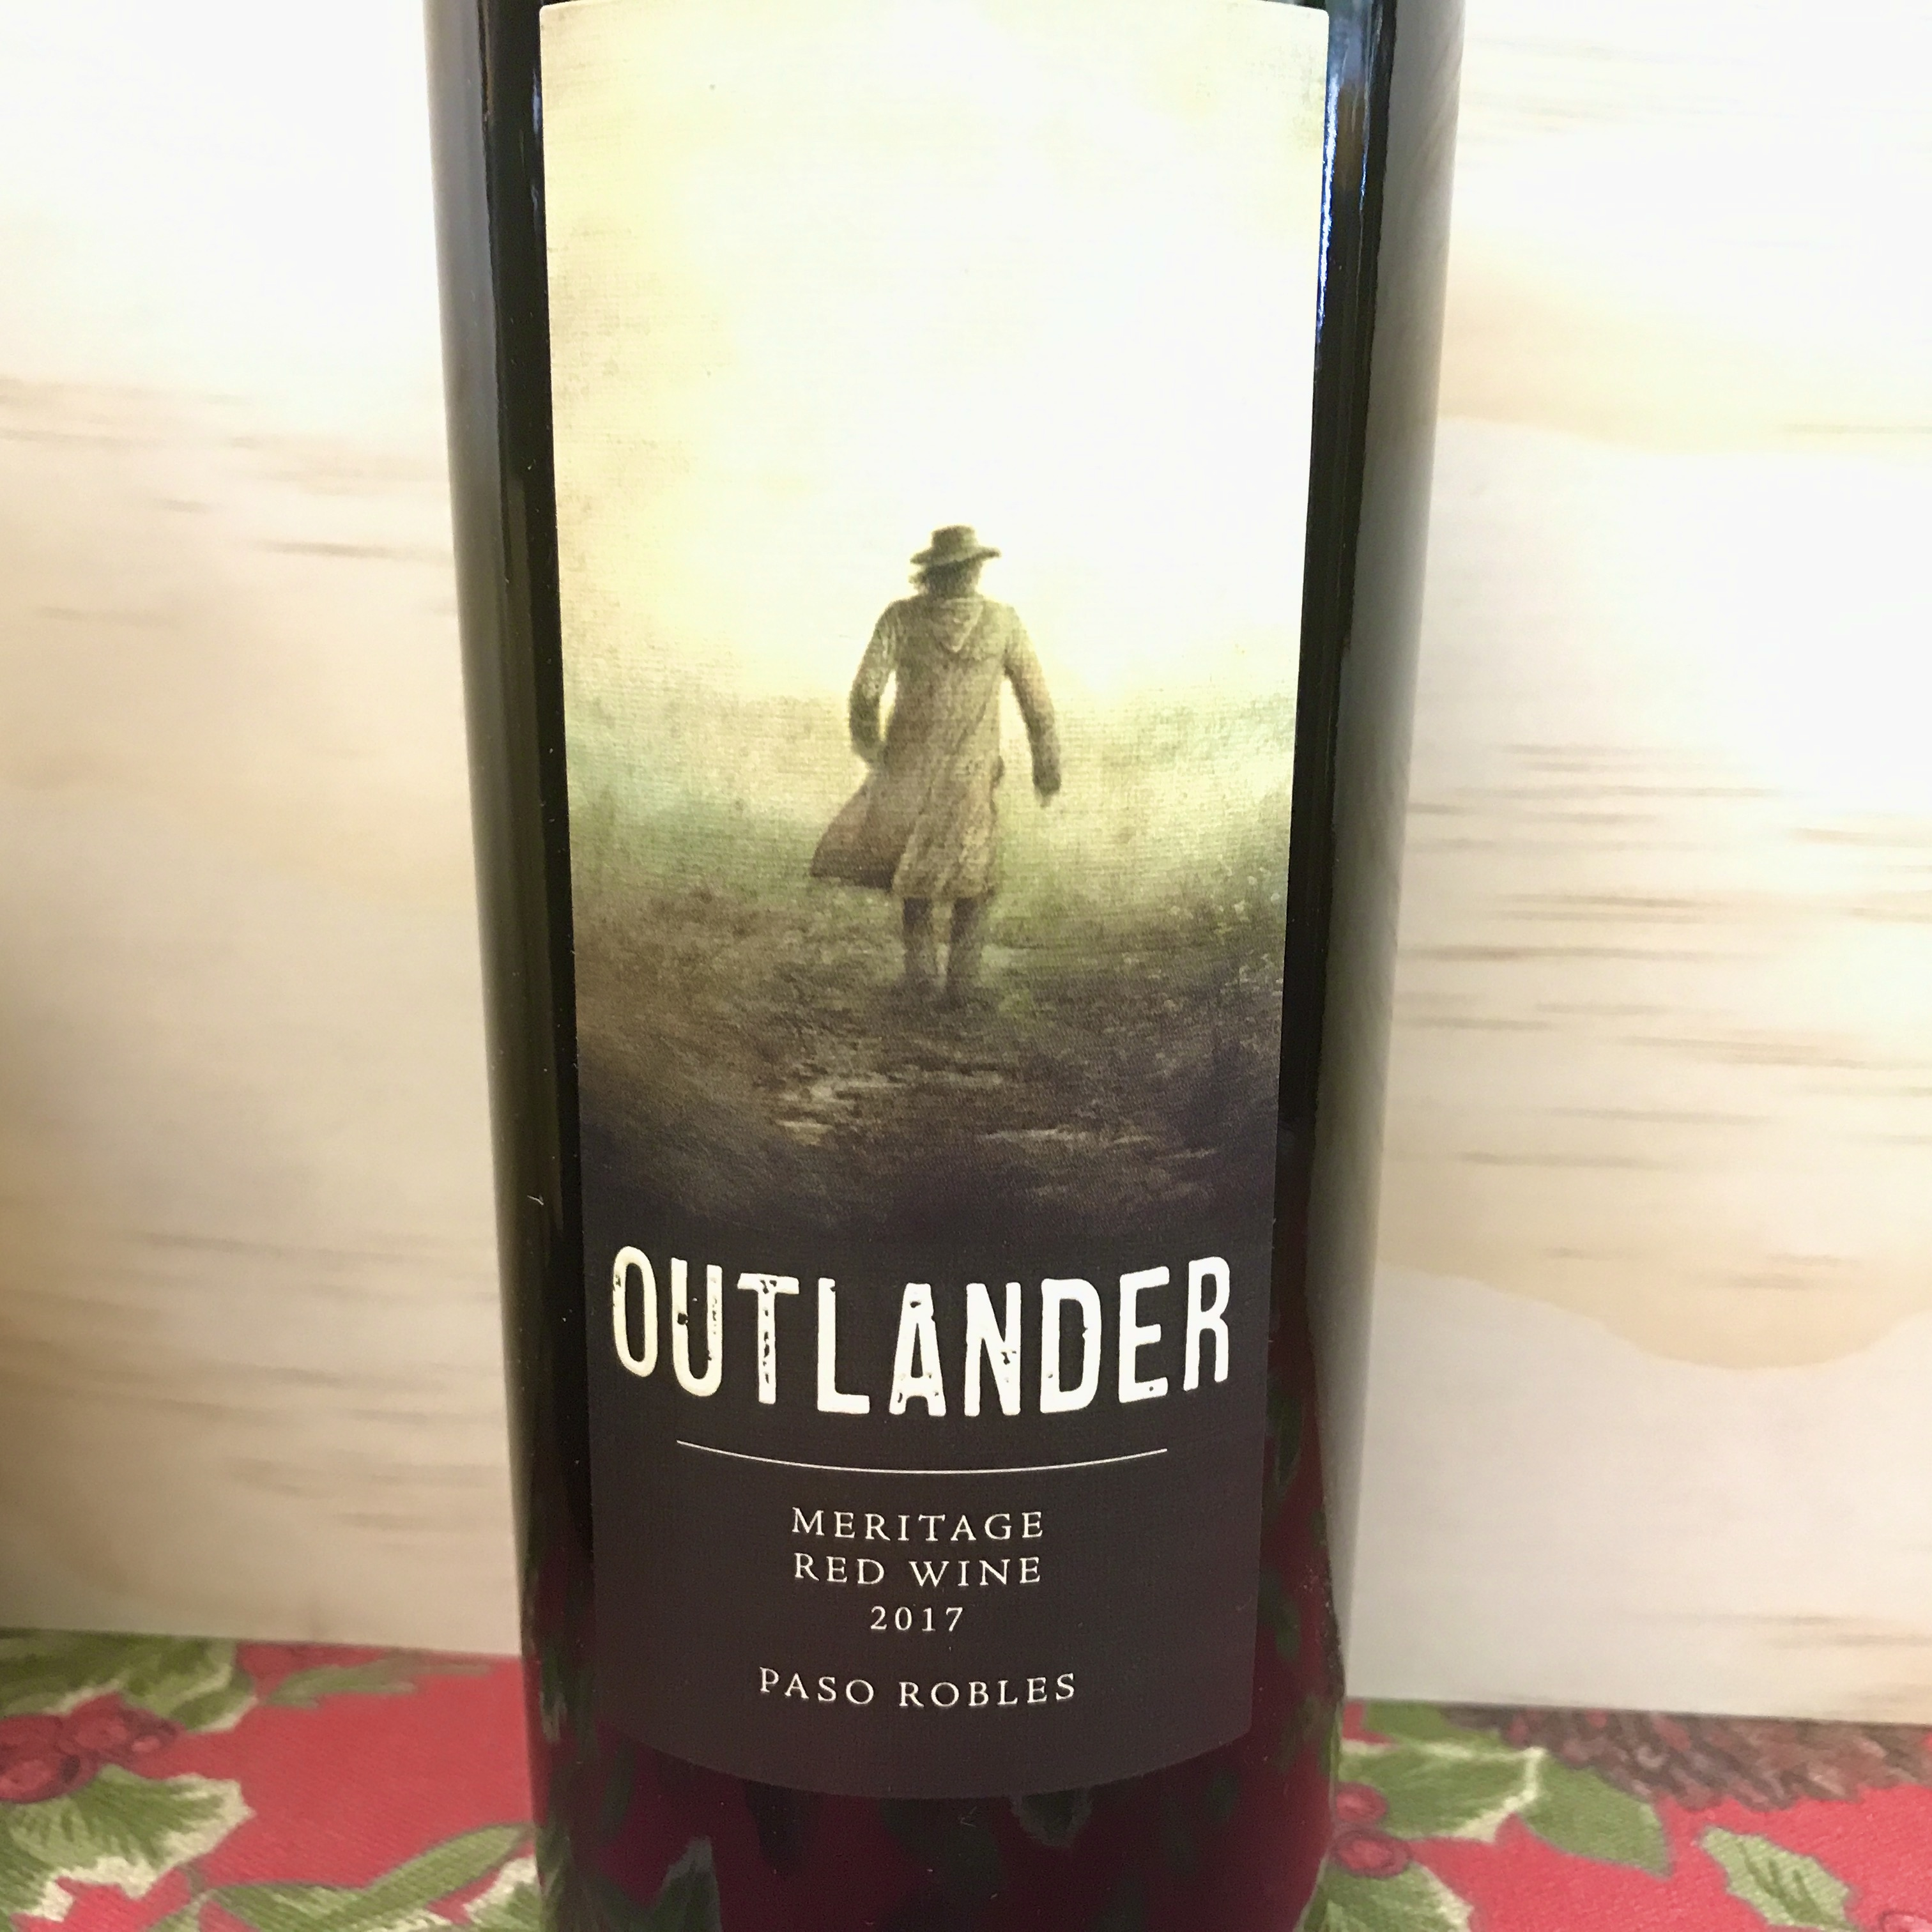 Outlander Meritage Red Wine Paso Robles 2017